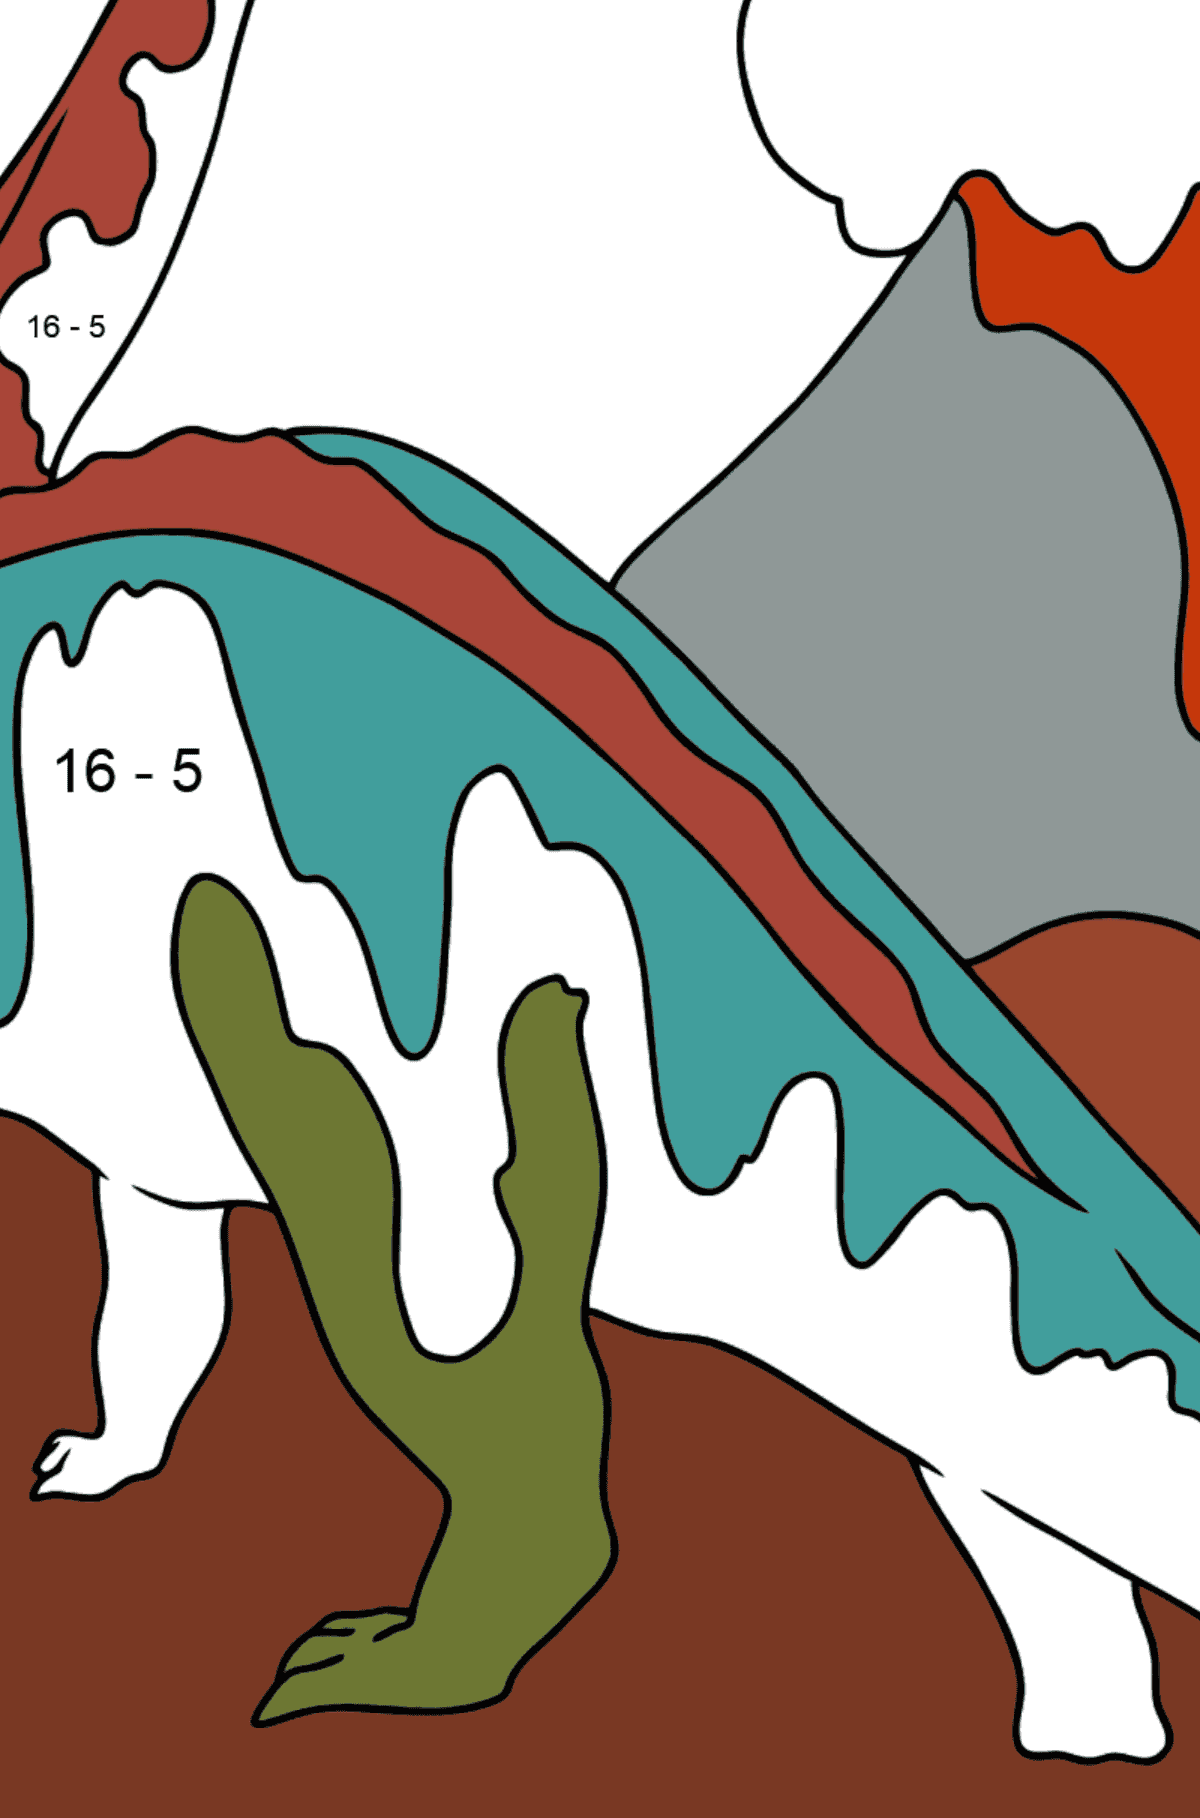 Coloring Page - Brontosaurus or a Deceiving Dinosaur - Math Coloring - Subtraction for Kids